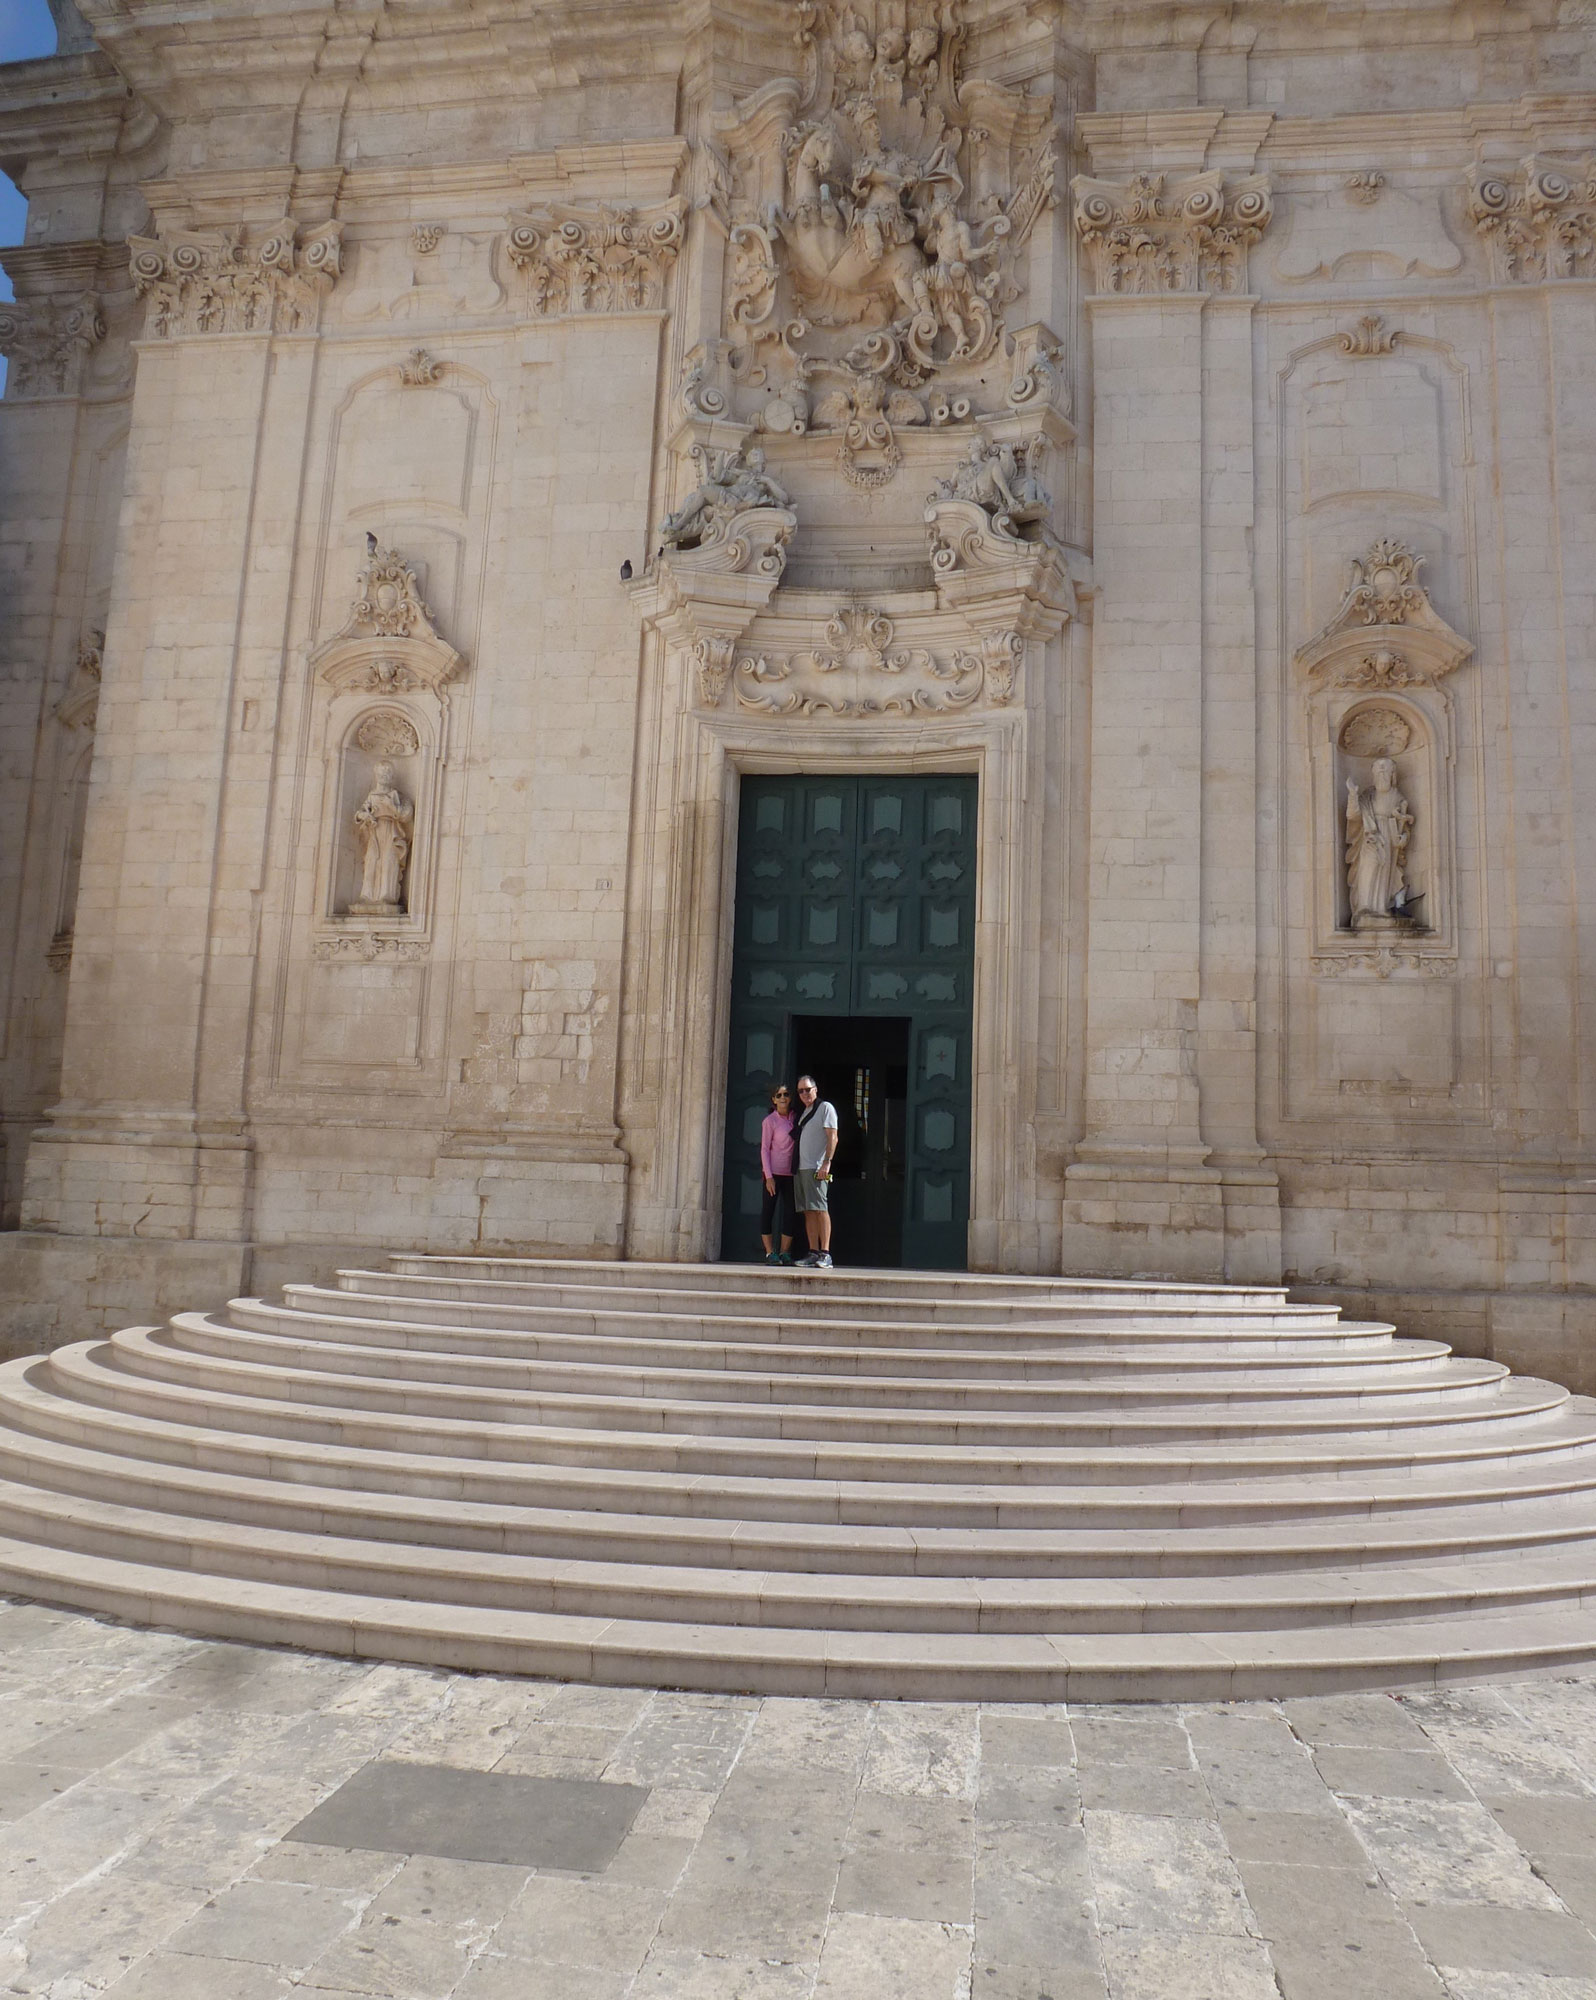 Biking to Martina Franca